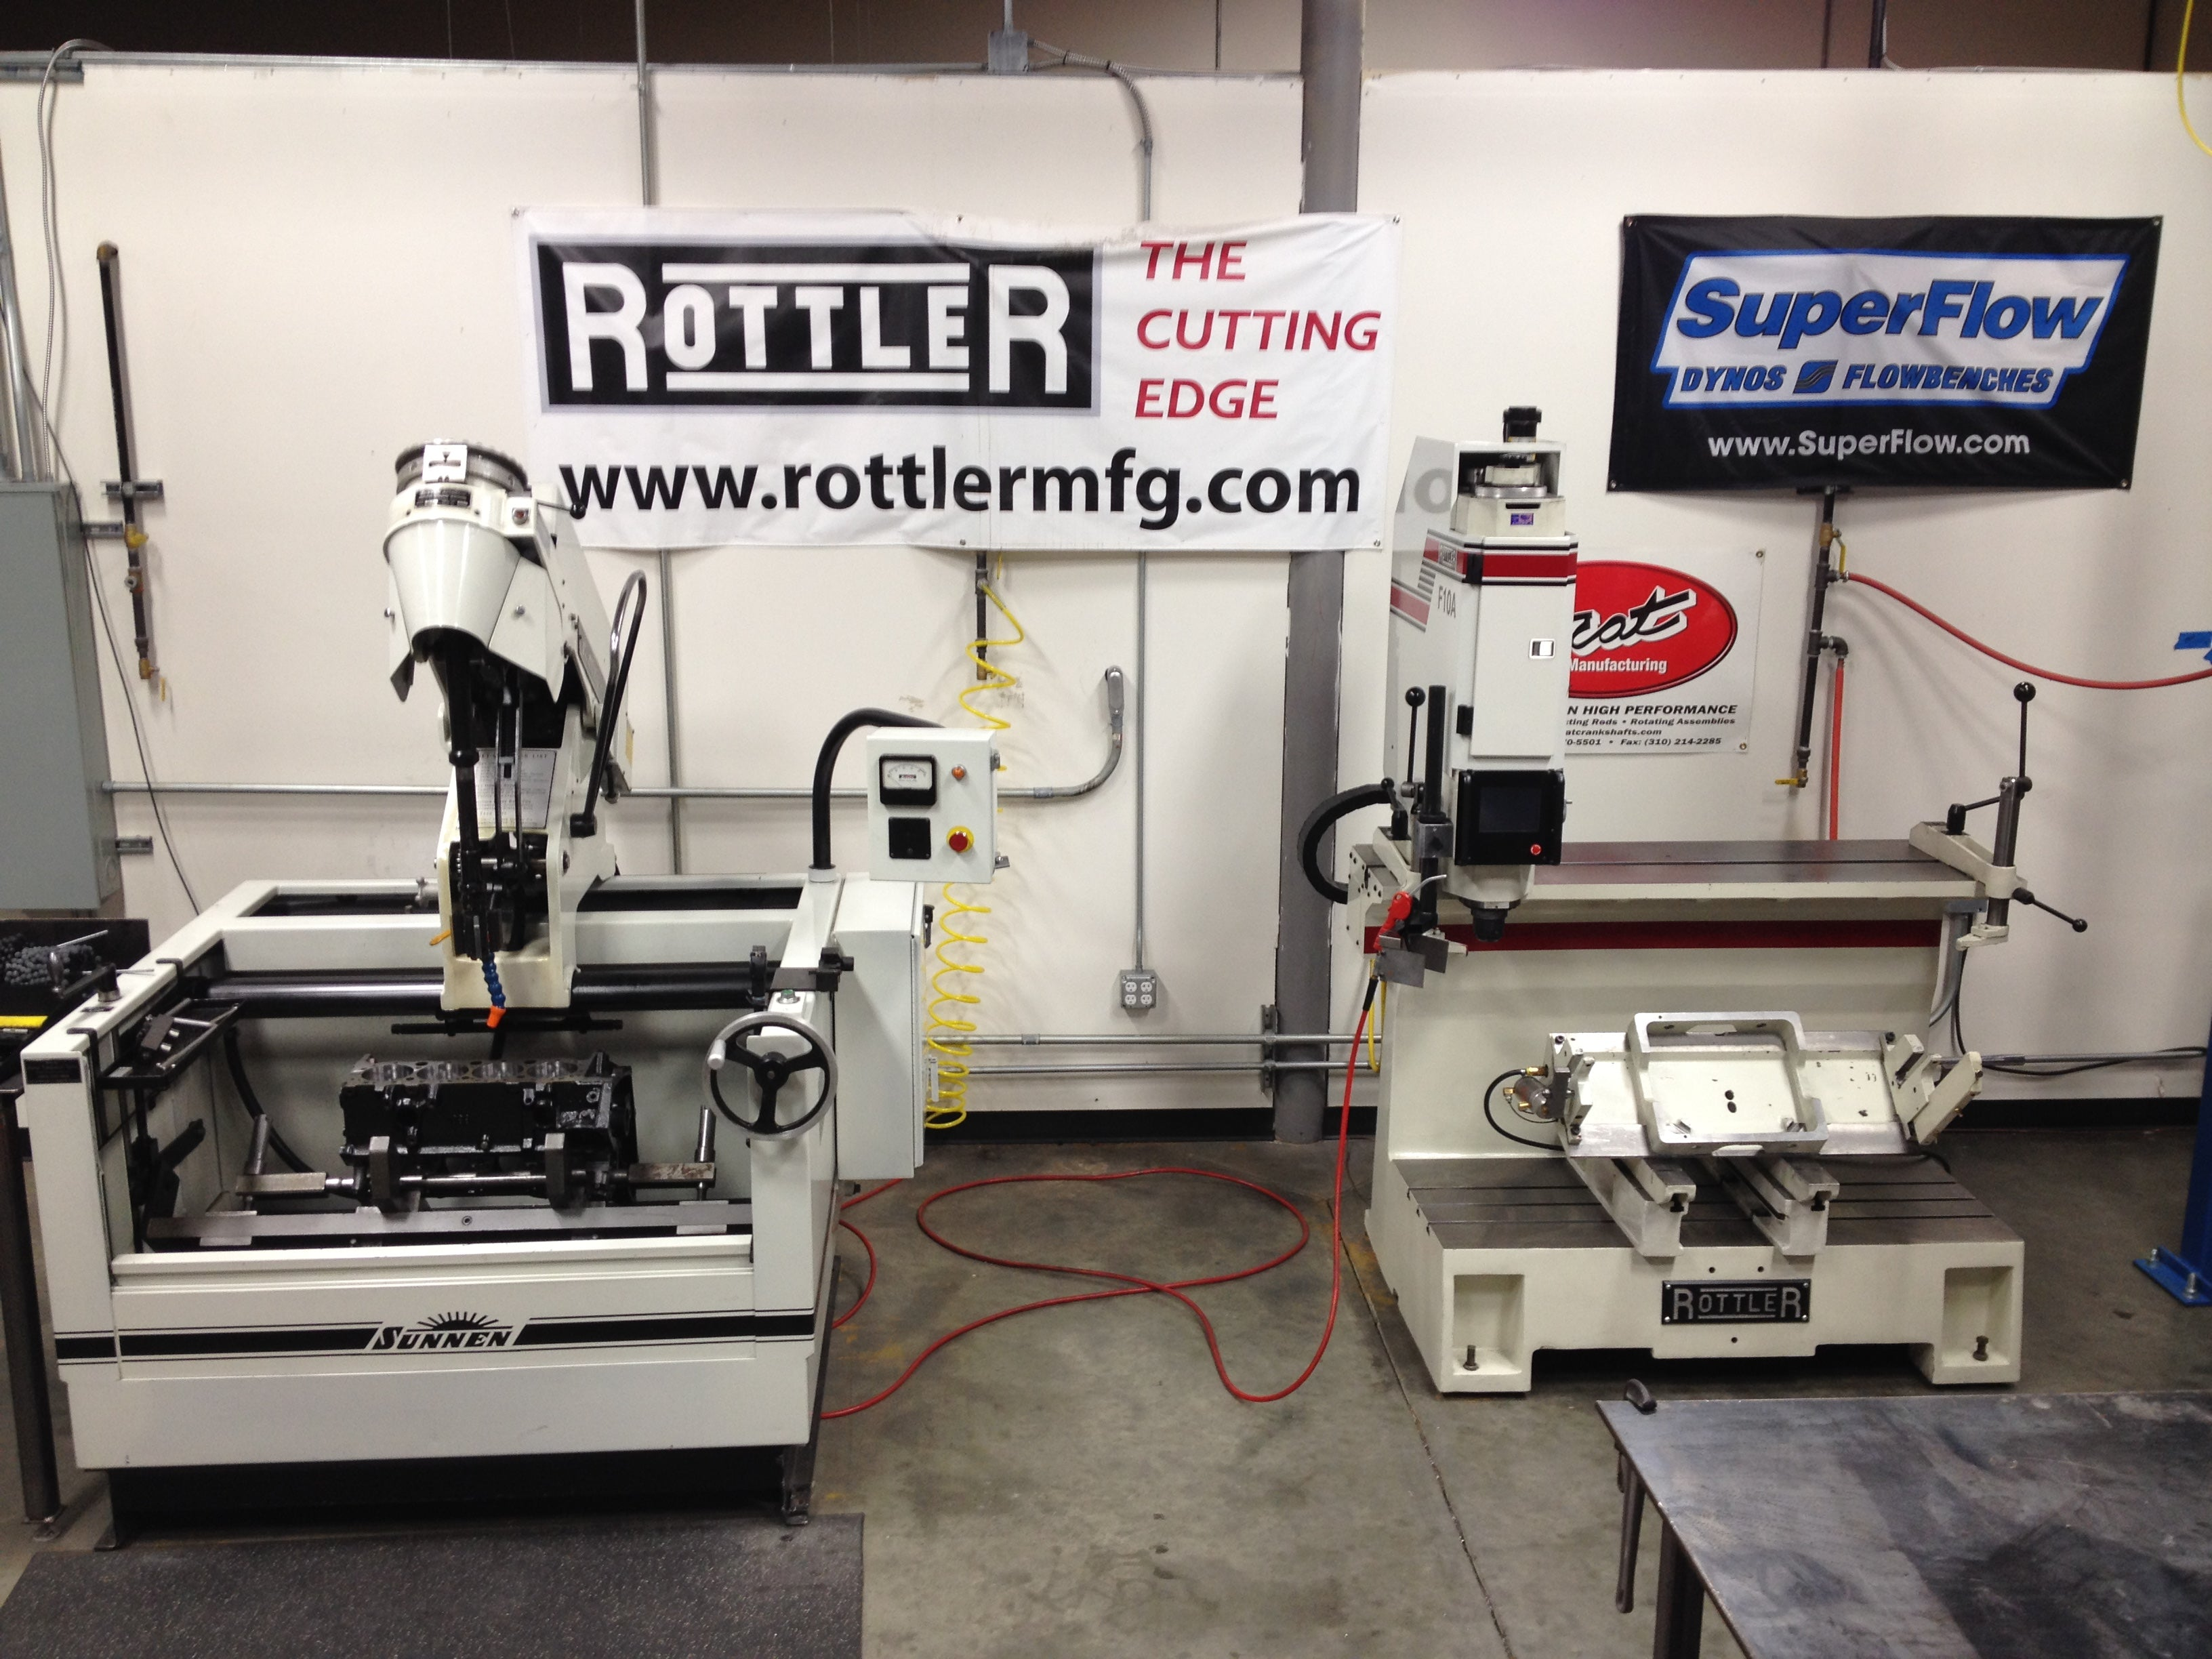 Rottler has been a company putting automotive engine rebuilding at it core business. This F10A CNC/ allows boring and sleeving with automatic bore centering, one man continuous operation.<br> Sunnen adds to the mix with TCB developed cylinder honing methods based on the intended build.